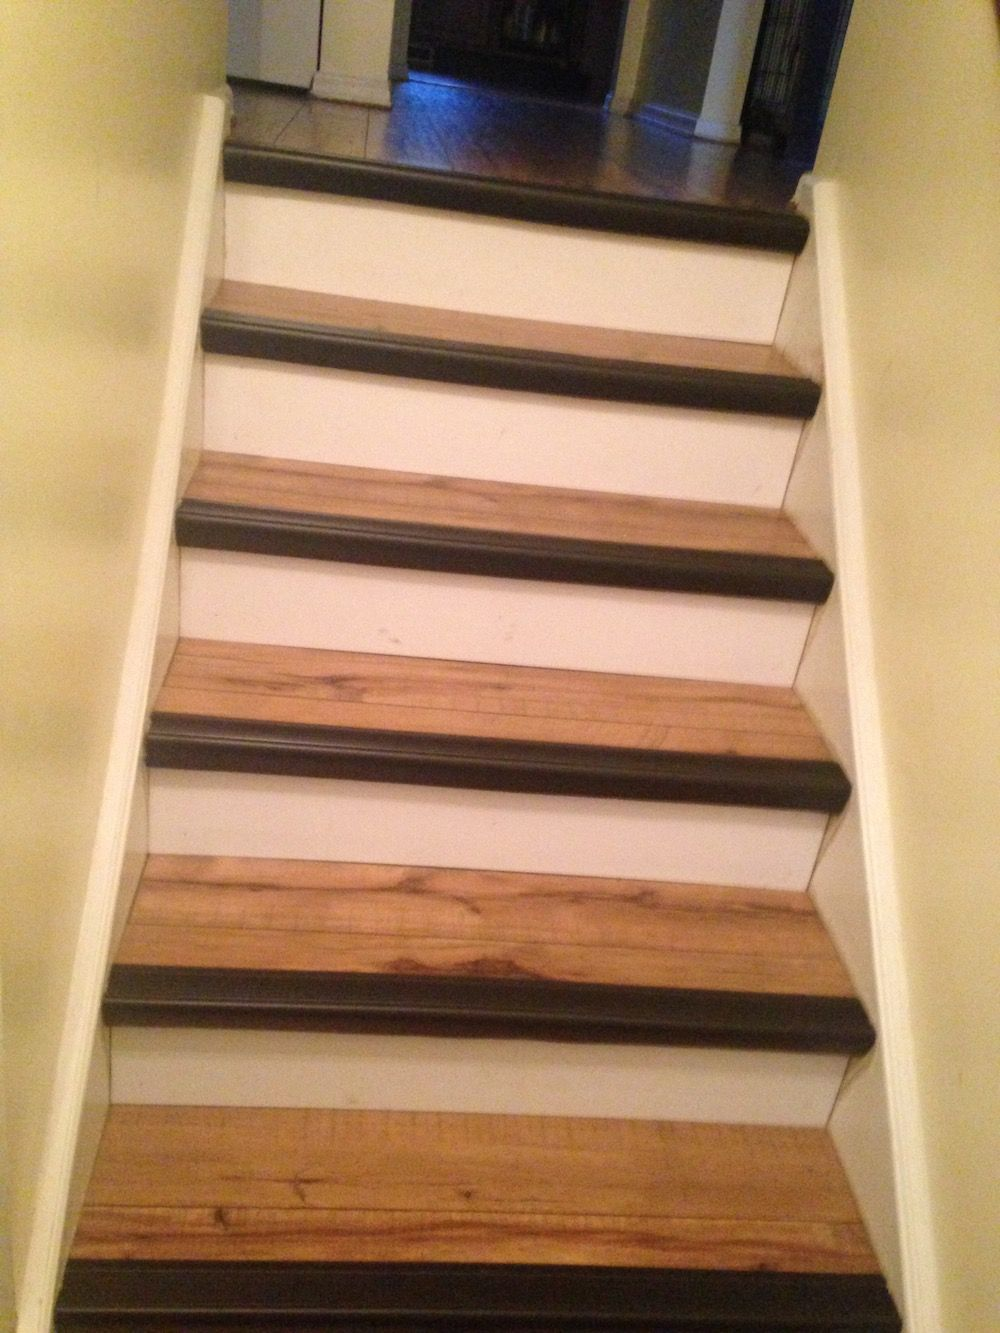 Best Contrast Stair Nosing Makes Steps Safer And Looks Stylish Which Contrasting Color Would You 400 x 300